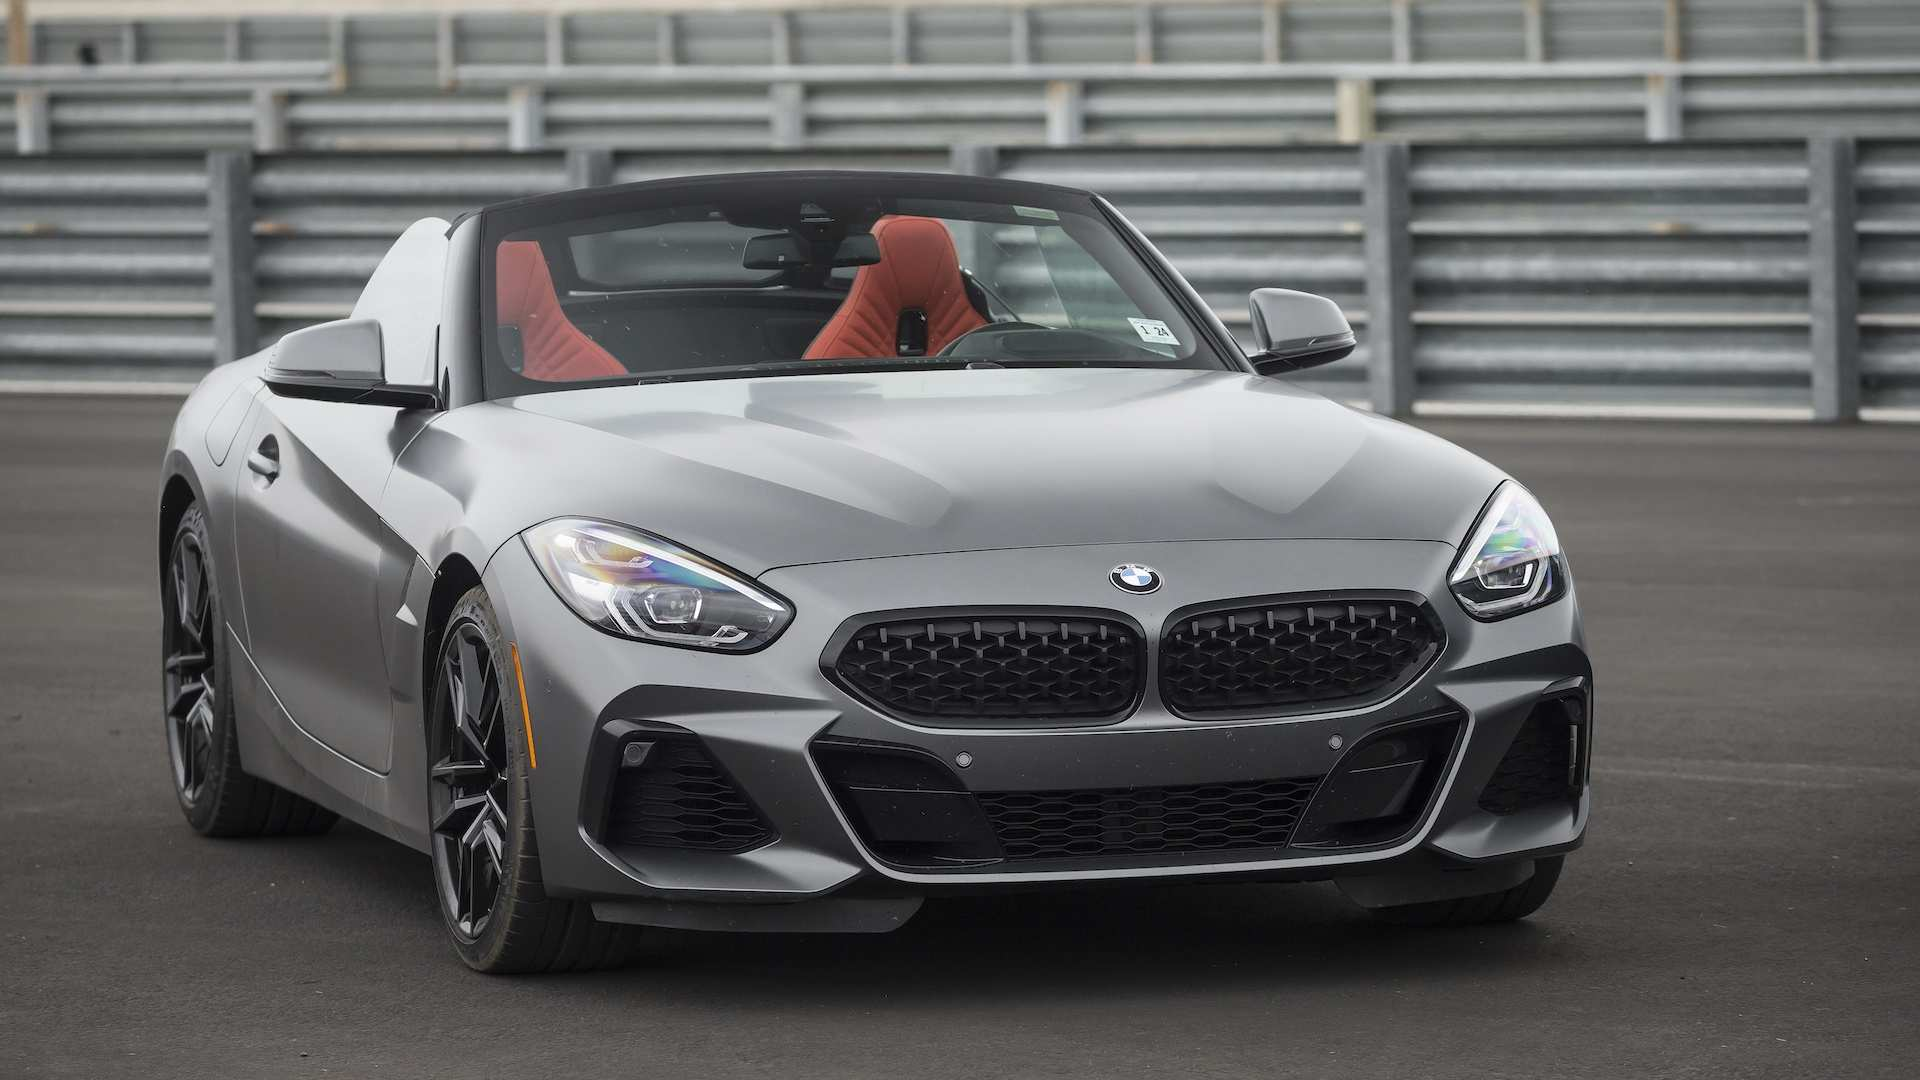 32 Great The Bmw Z4 2019 Engine First Drive Release Date for The Bmw Z4 2019 Engine First Drive